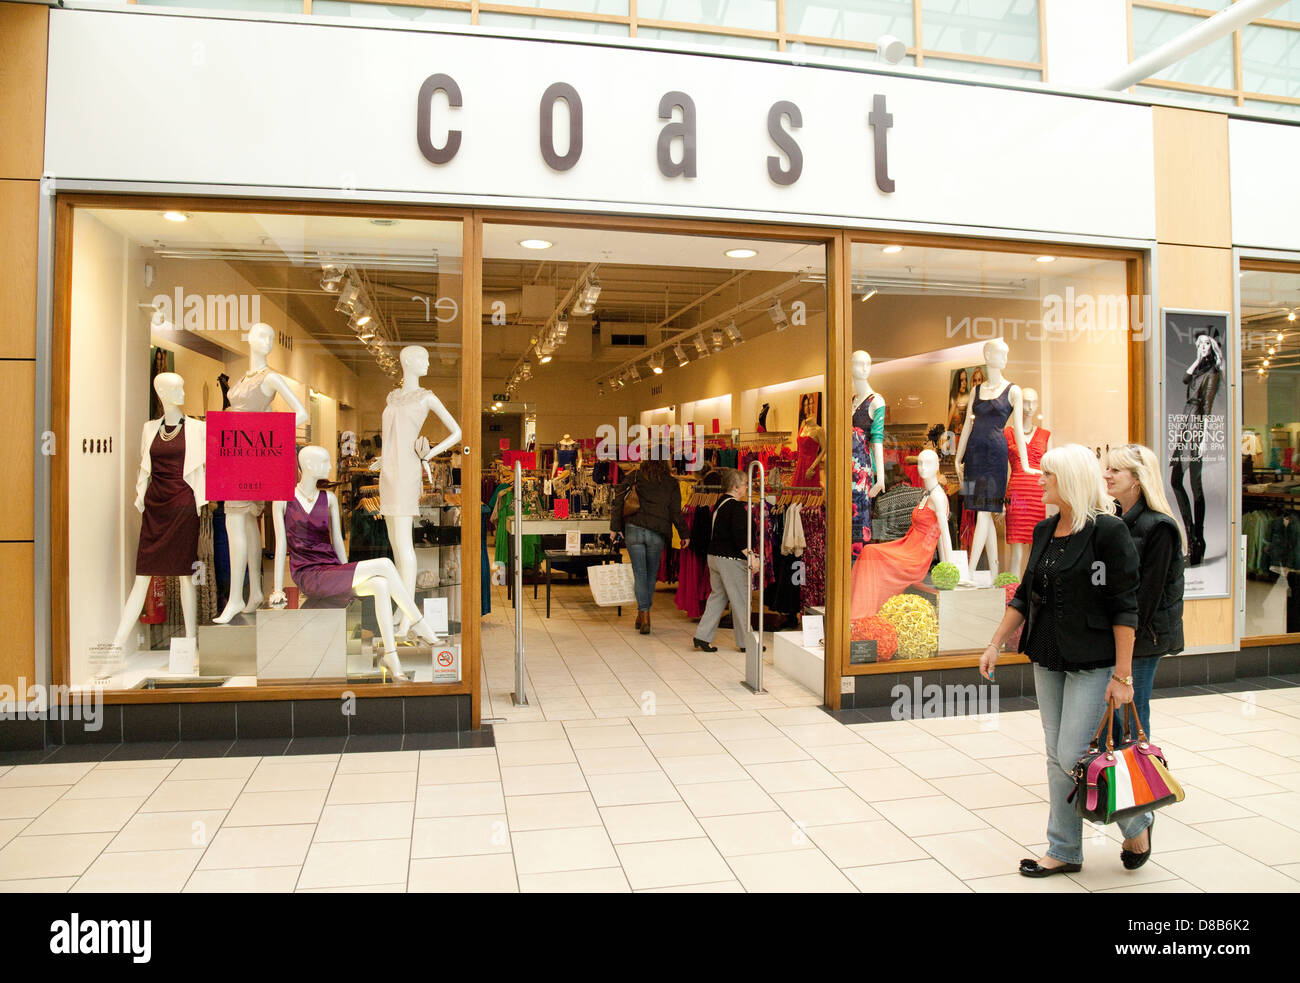 Women's Designer Outlet Clothing Stores The Coast store shop womens